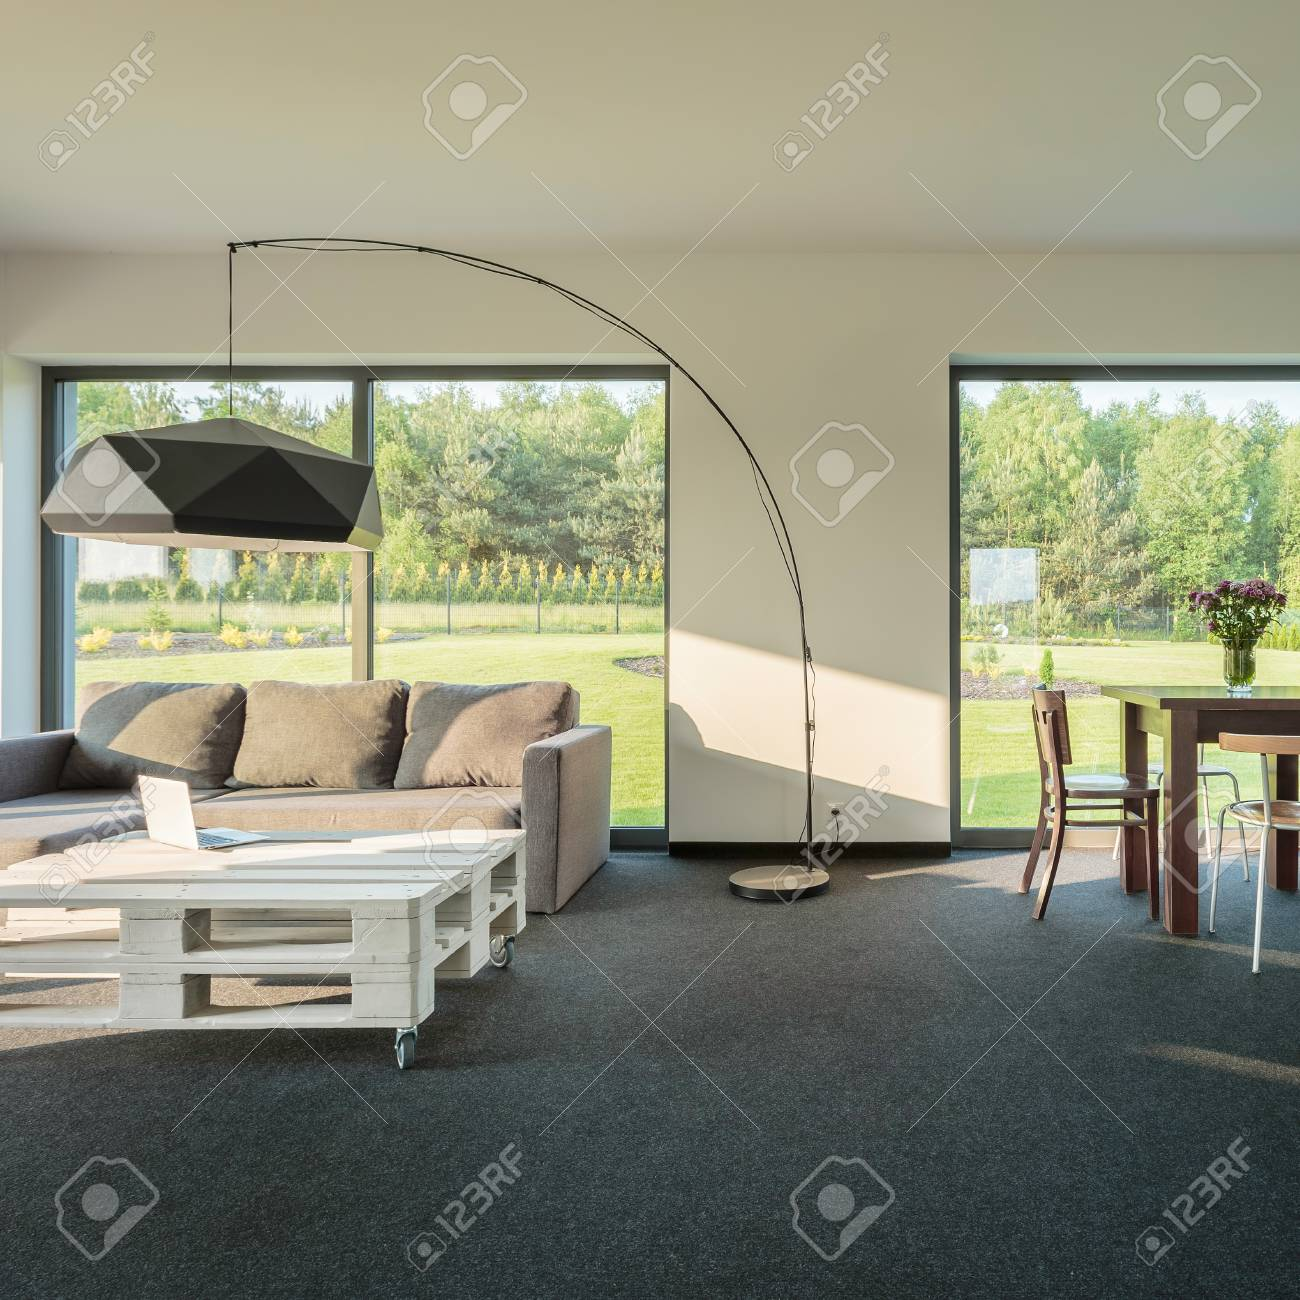 Spacious And Modern Living Room Interior With Big Windows Stock Photo Picture And Royalty Free Image Image 58747096